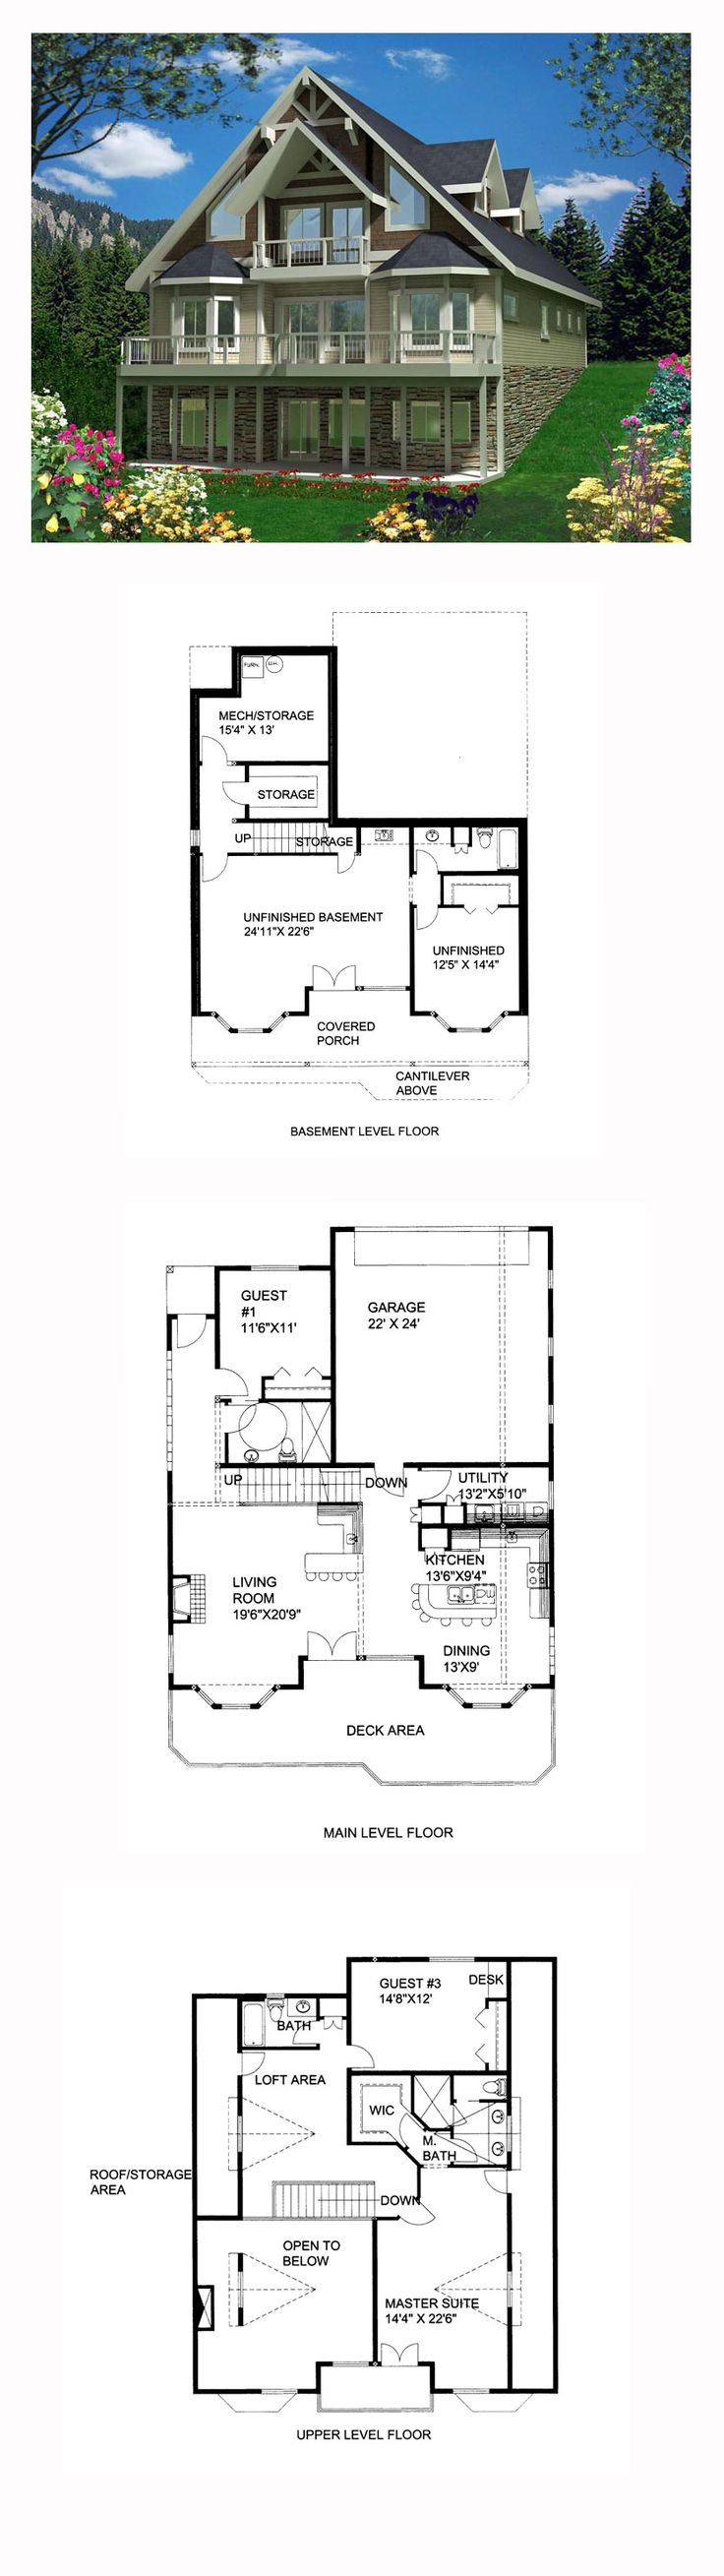 29 best images about steep slope house plans on pinterest for Steep hillside house plans